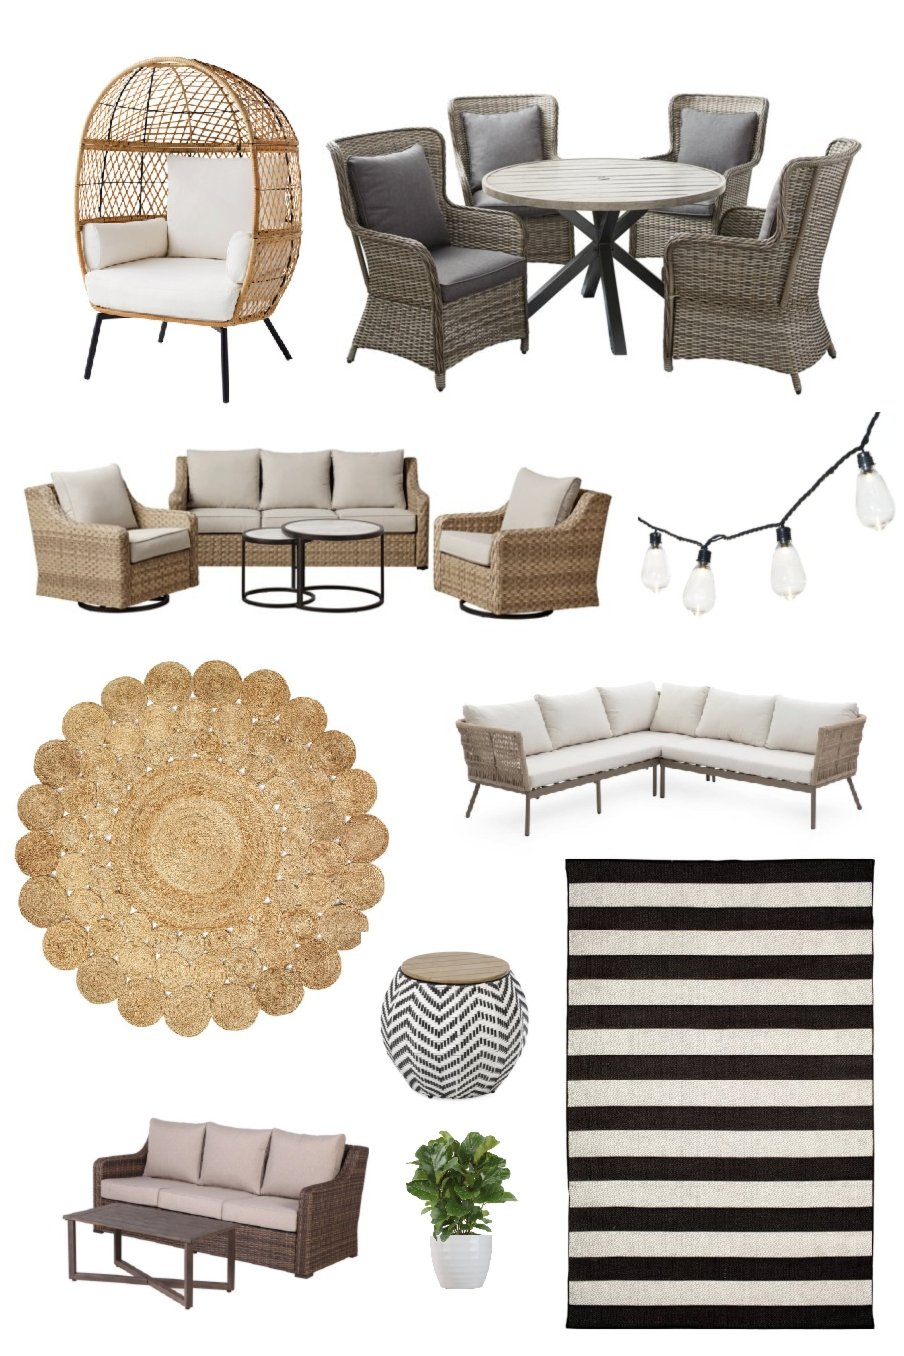 Patio on a Budget Ideas, Decorate for Under $1000, affordable patio decor from Walmart